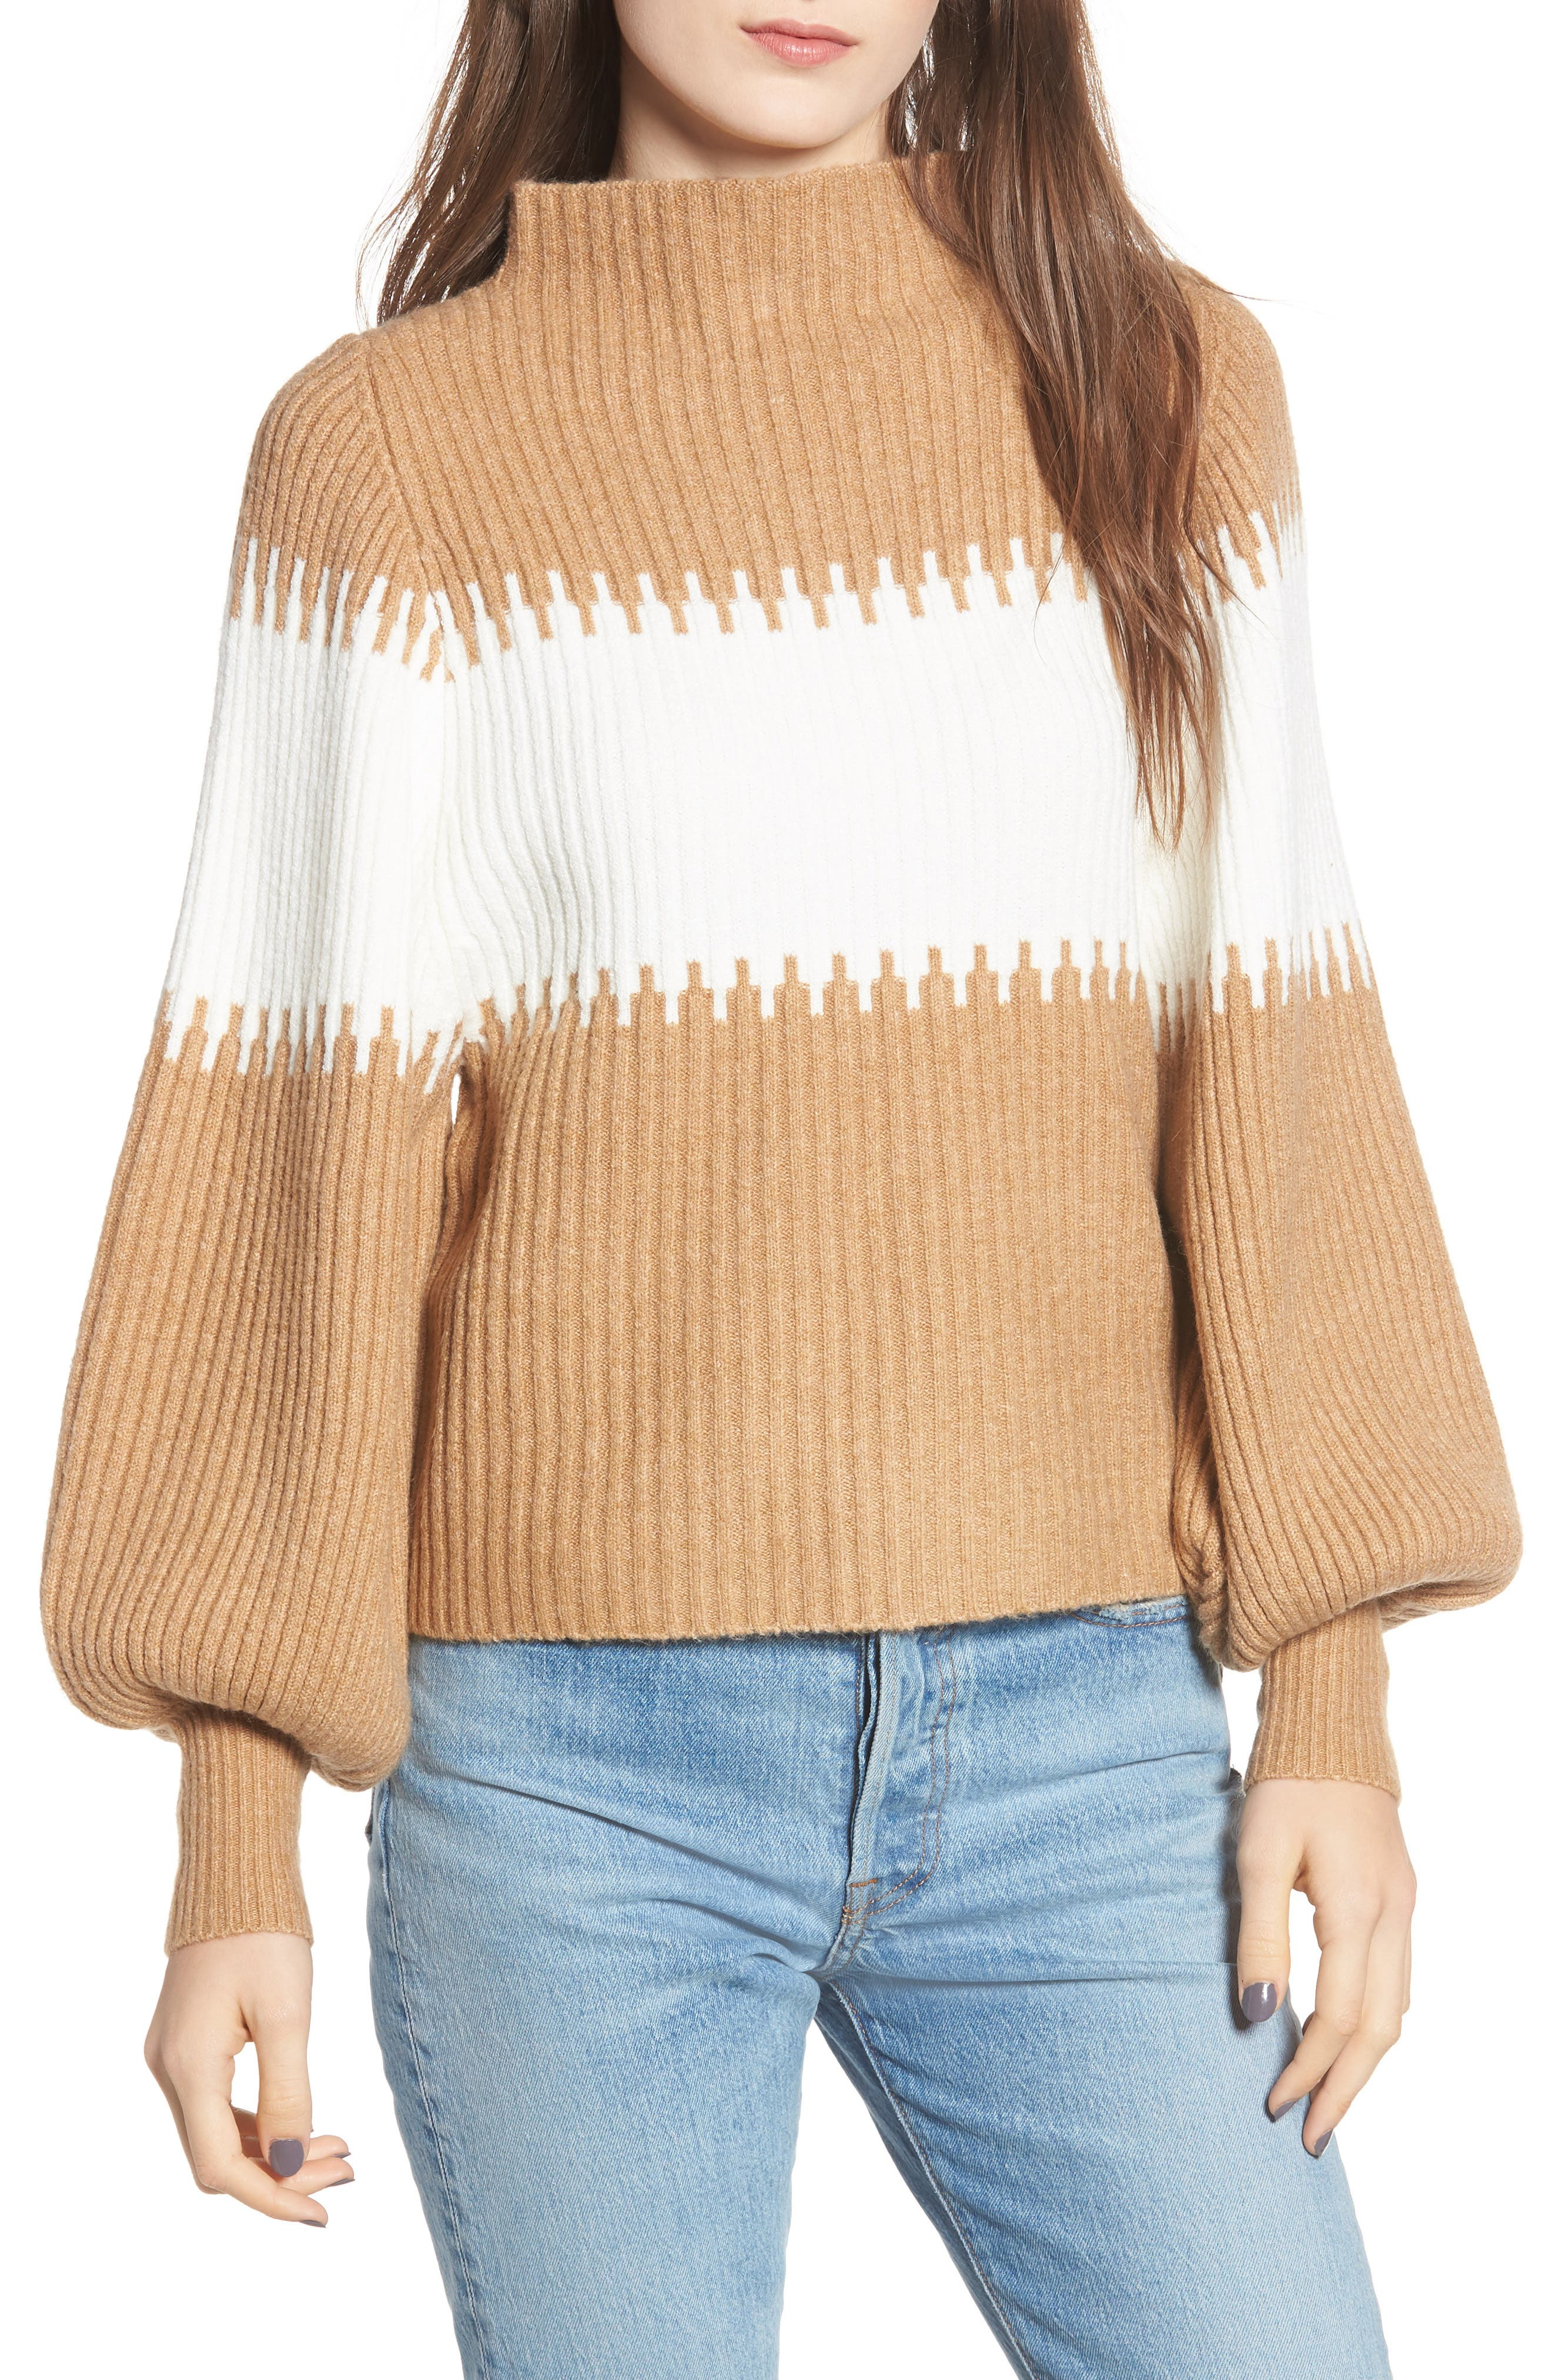 Sofia Funnel Neck Sweater,                             Main thumbnail 1, color,                             CAMEL/ WHITE